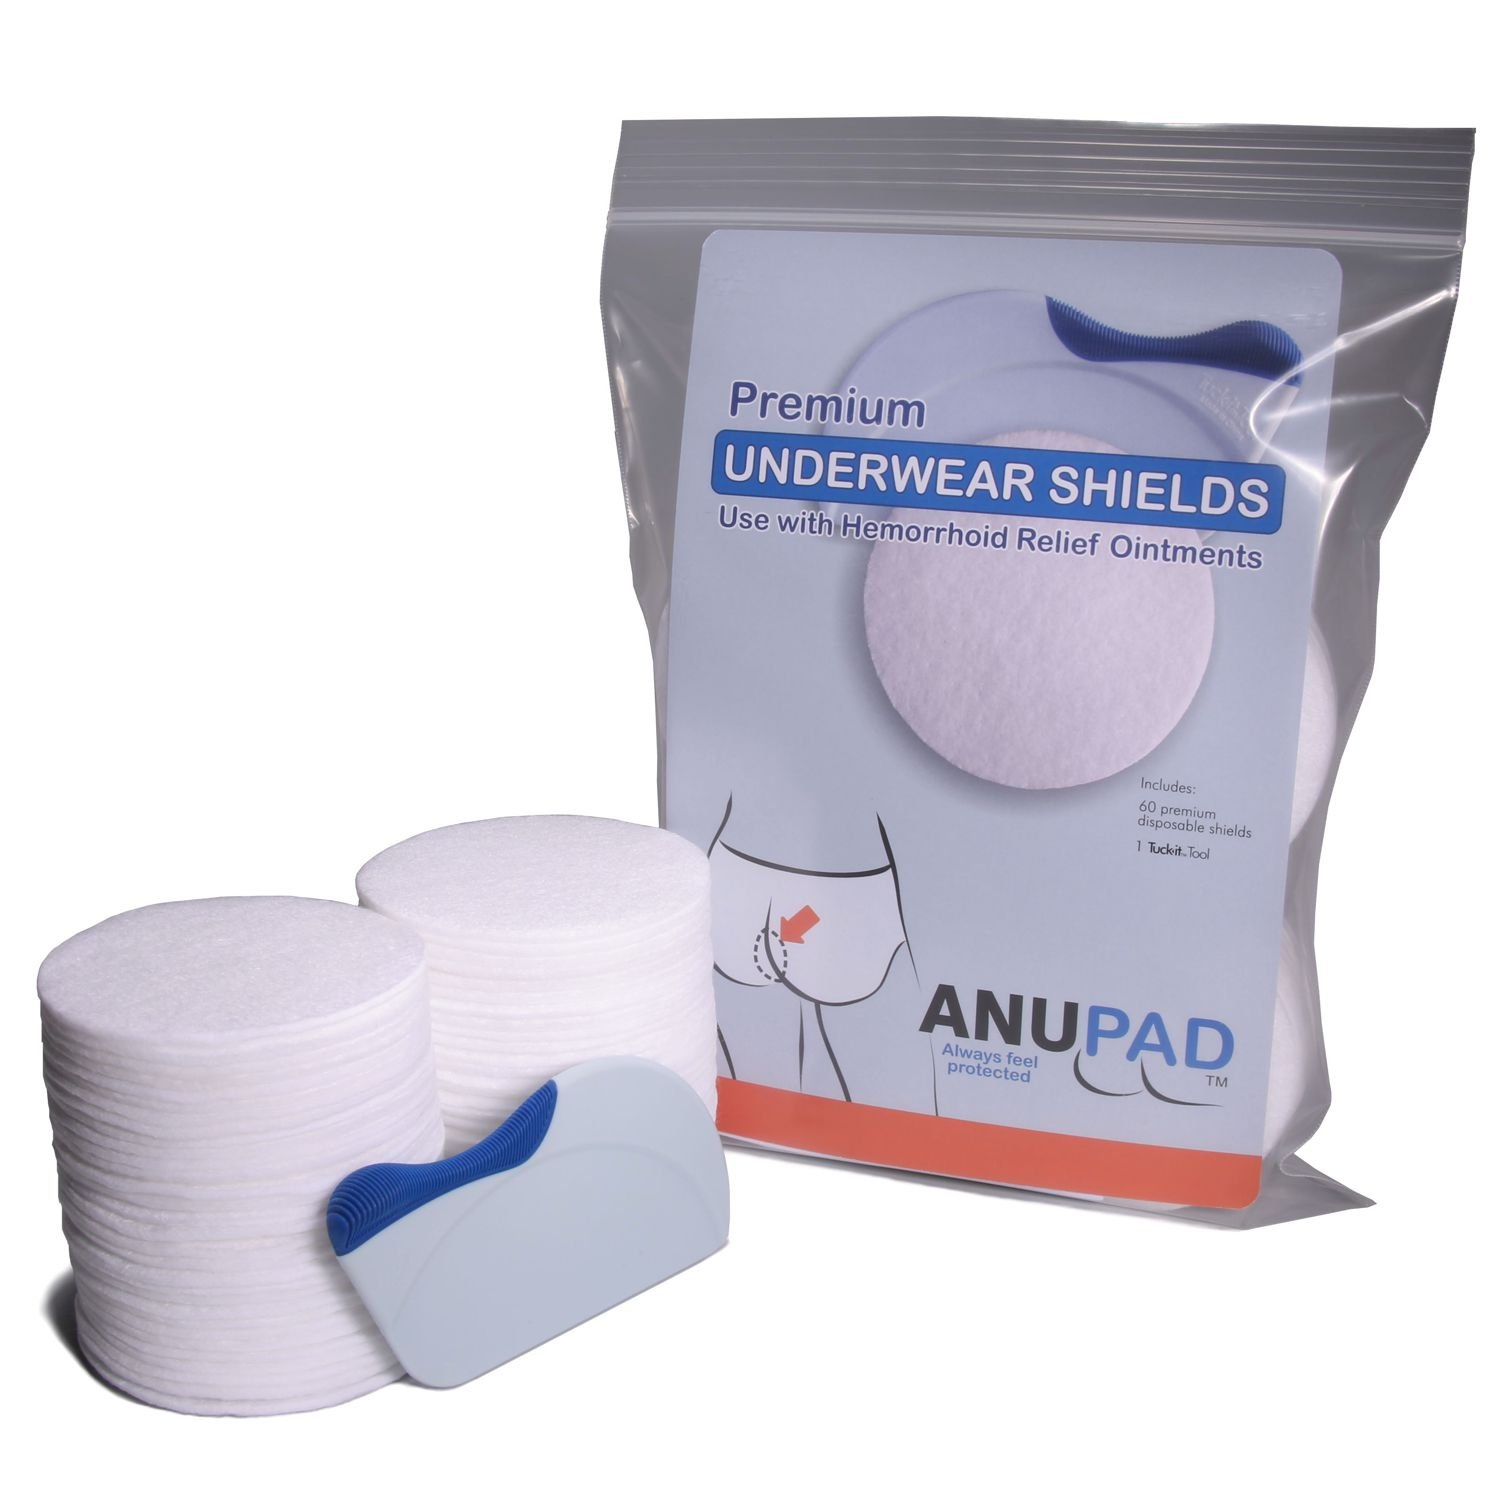 ANUPAD - Stop The Mess Hemorrhoid Creams Make, Shields and Protects Your Underwear, Use with Preparation H, Includes Premium Shields plus Tuck-it Tool (60 Pack)